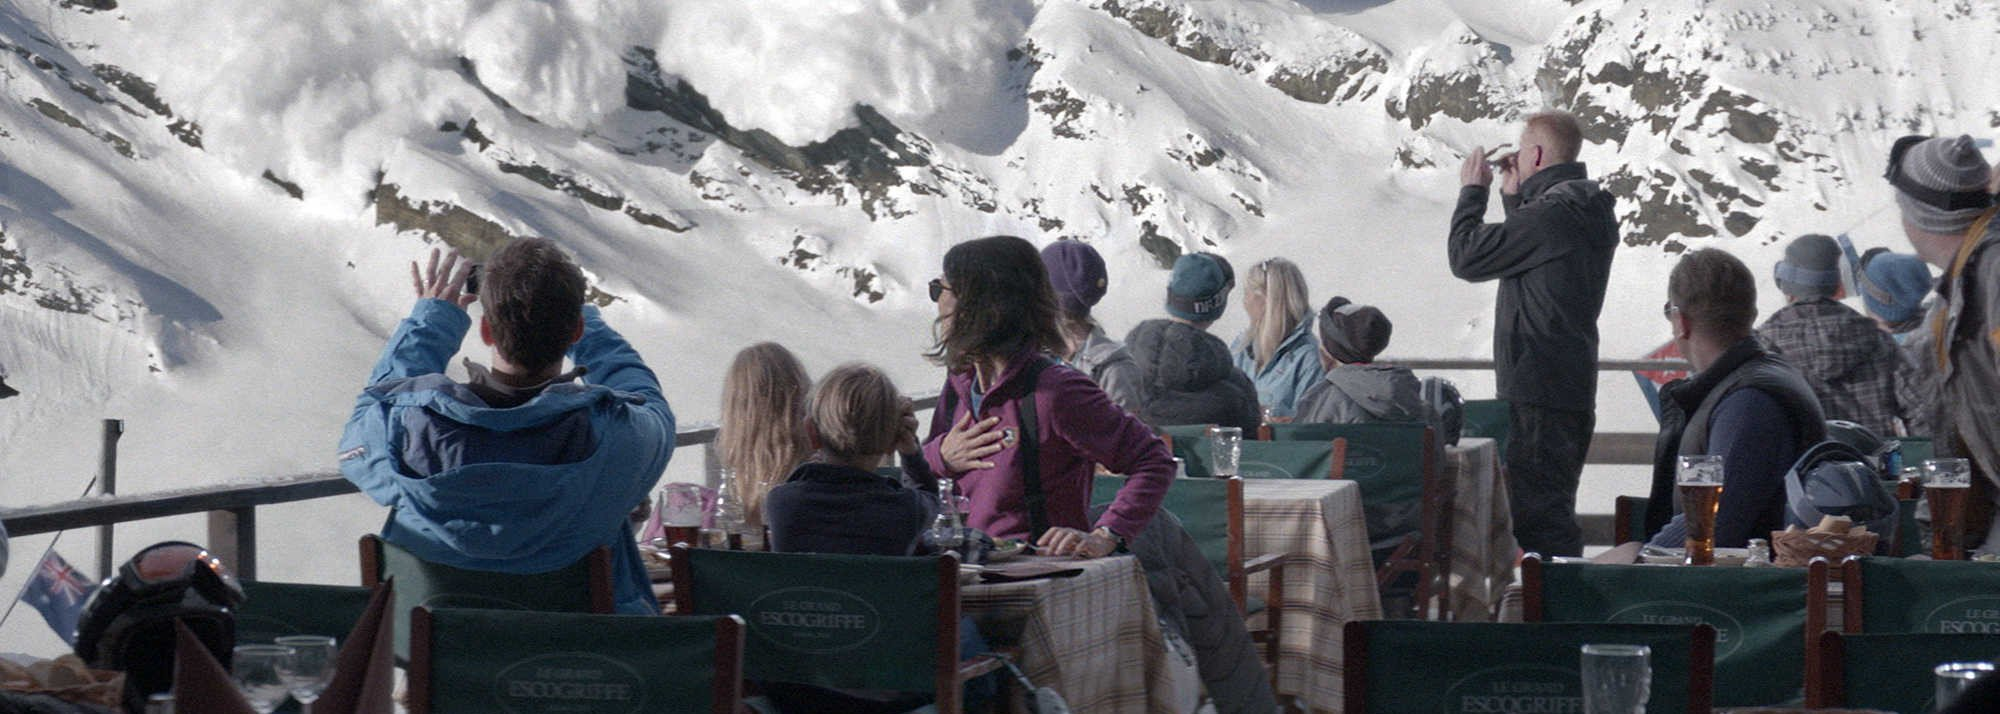 Film: Force Majeure feature image